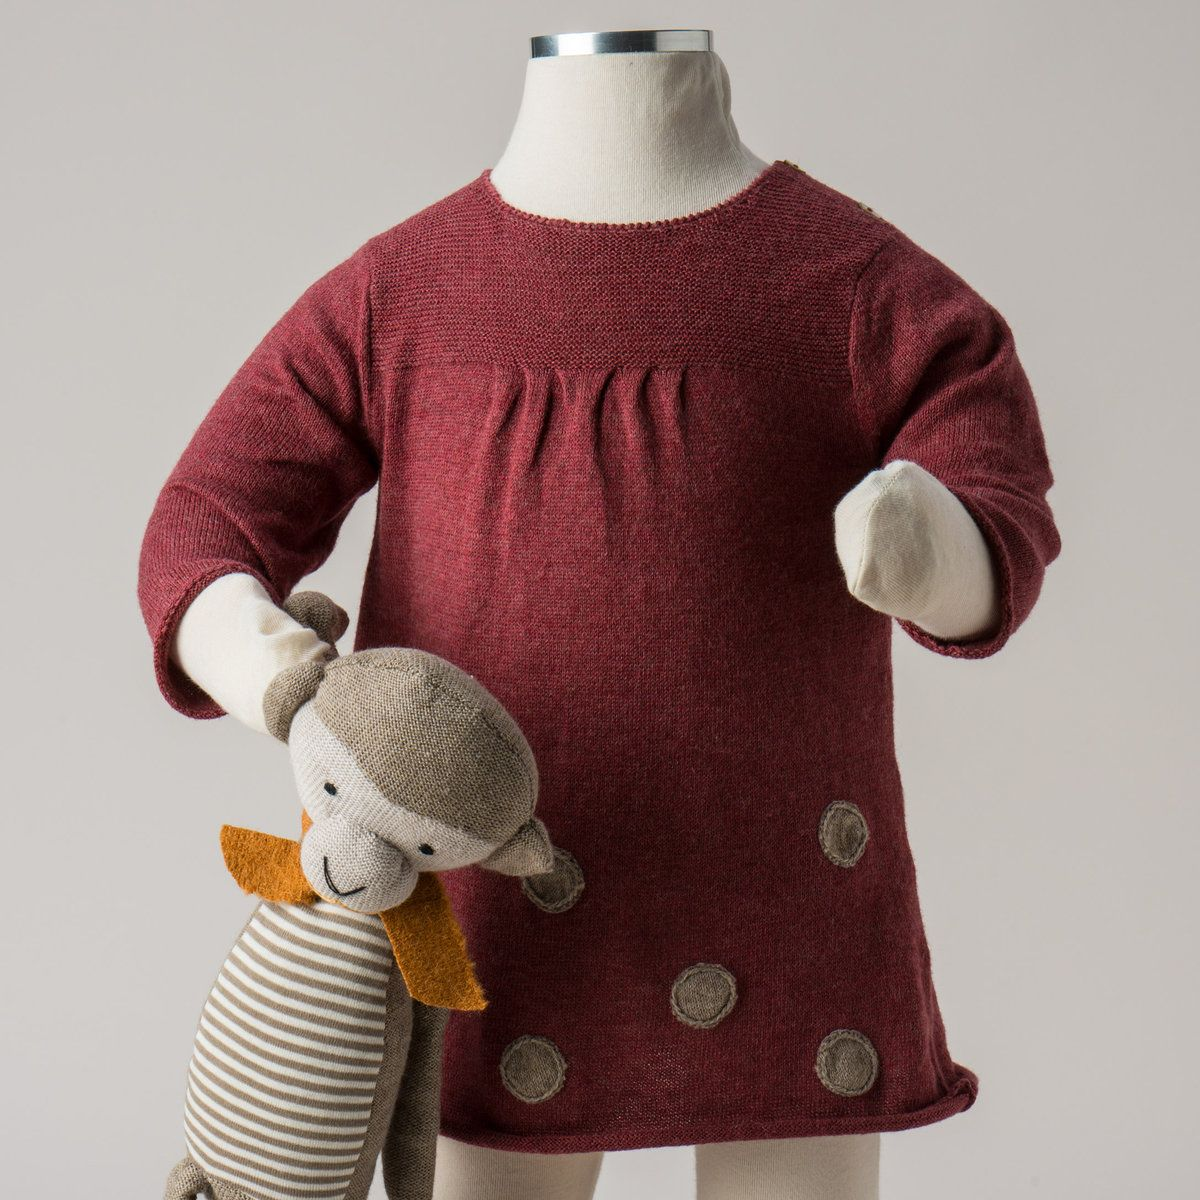 Luxurious Organic Infant And Baby Clothing Dresses Dress With